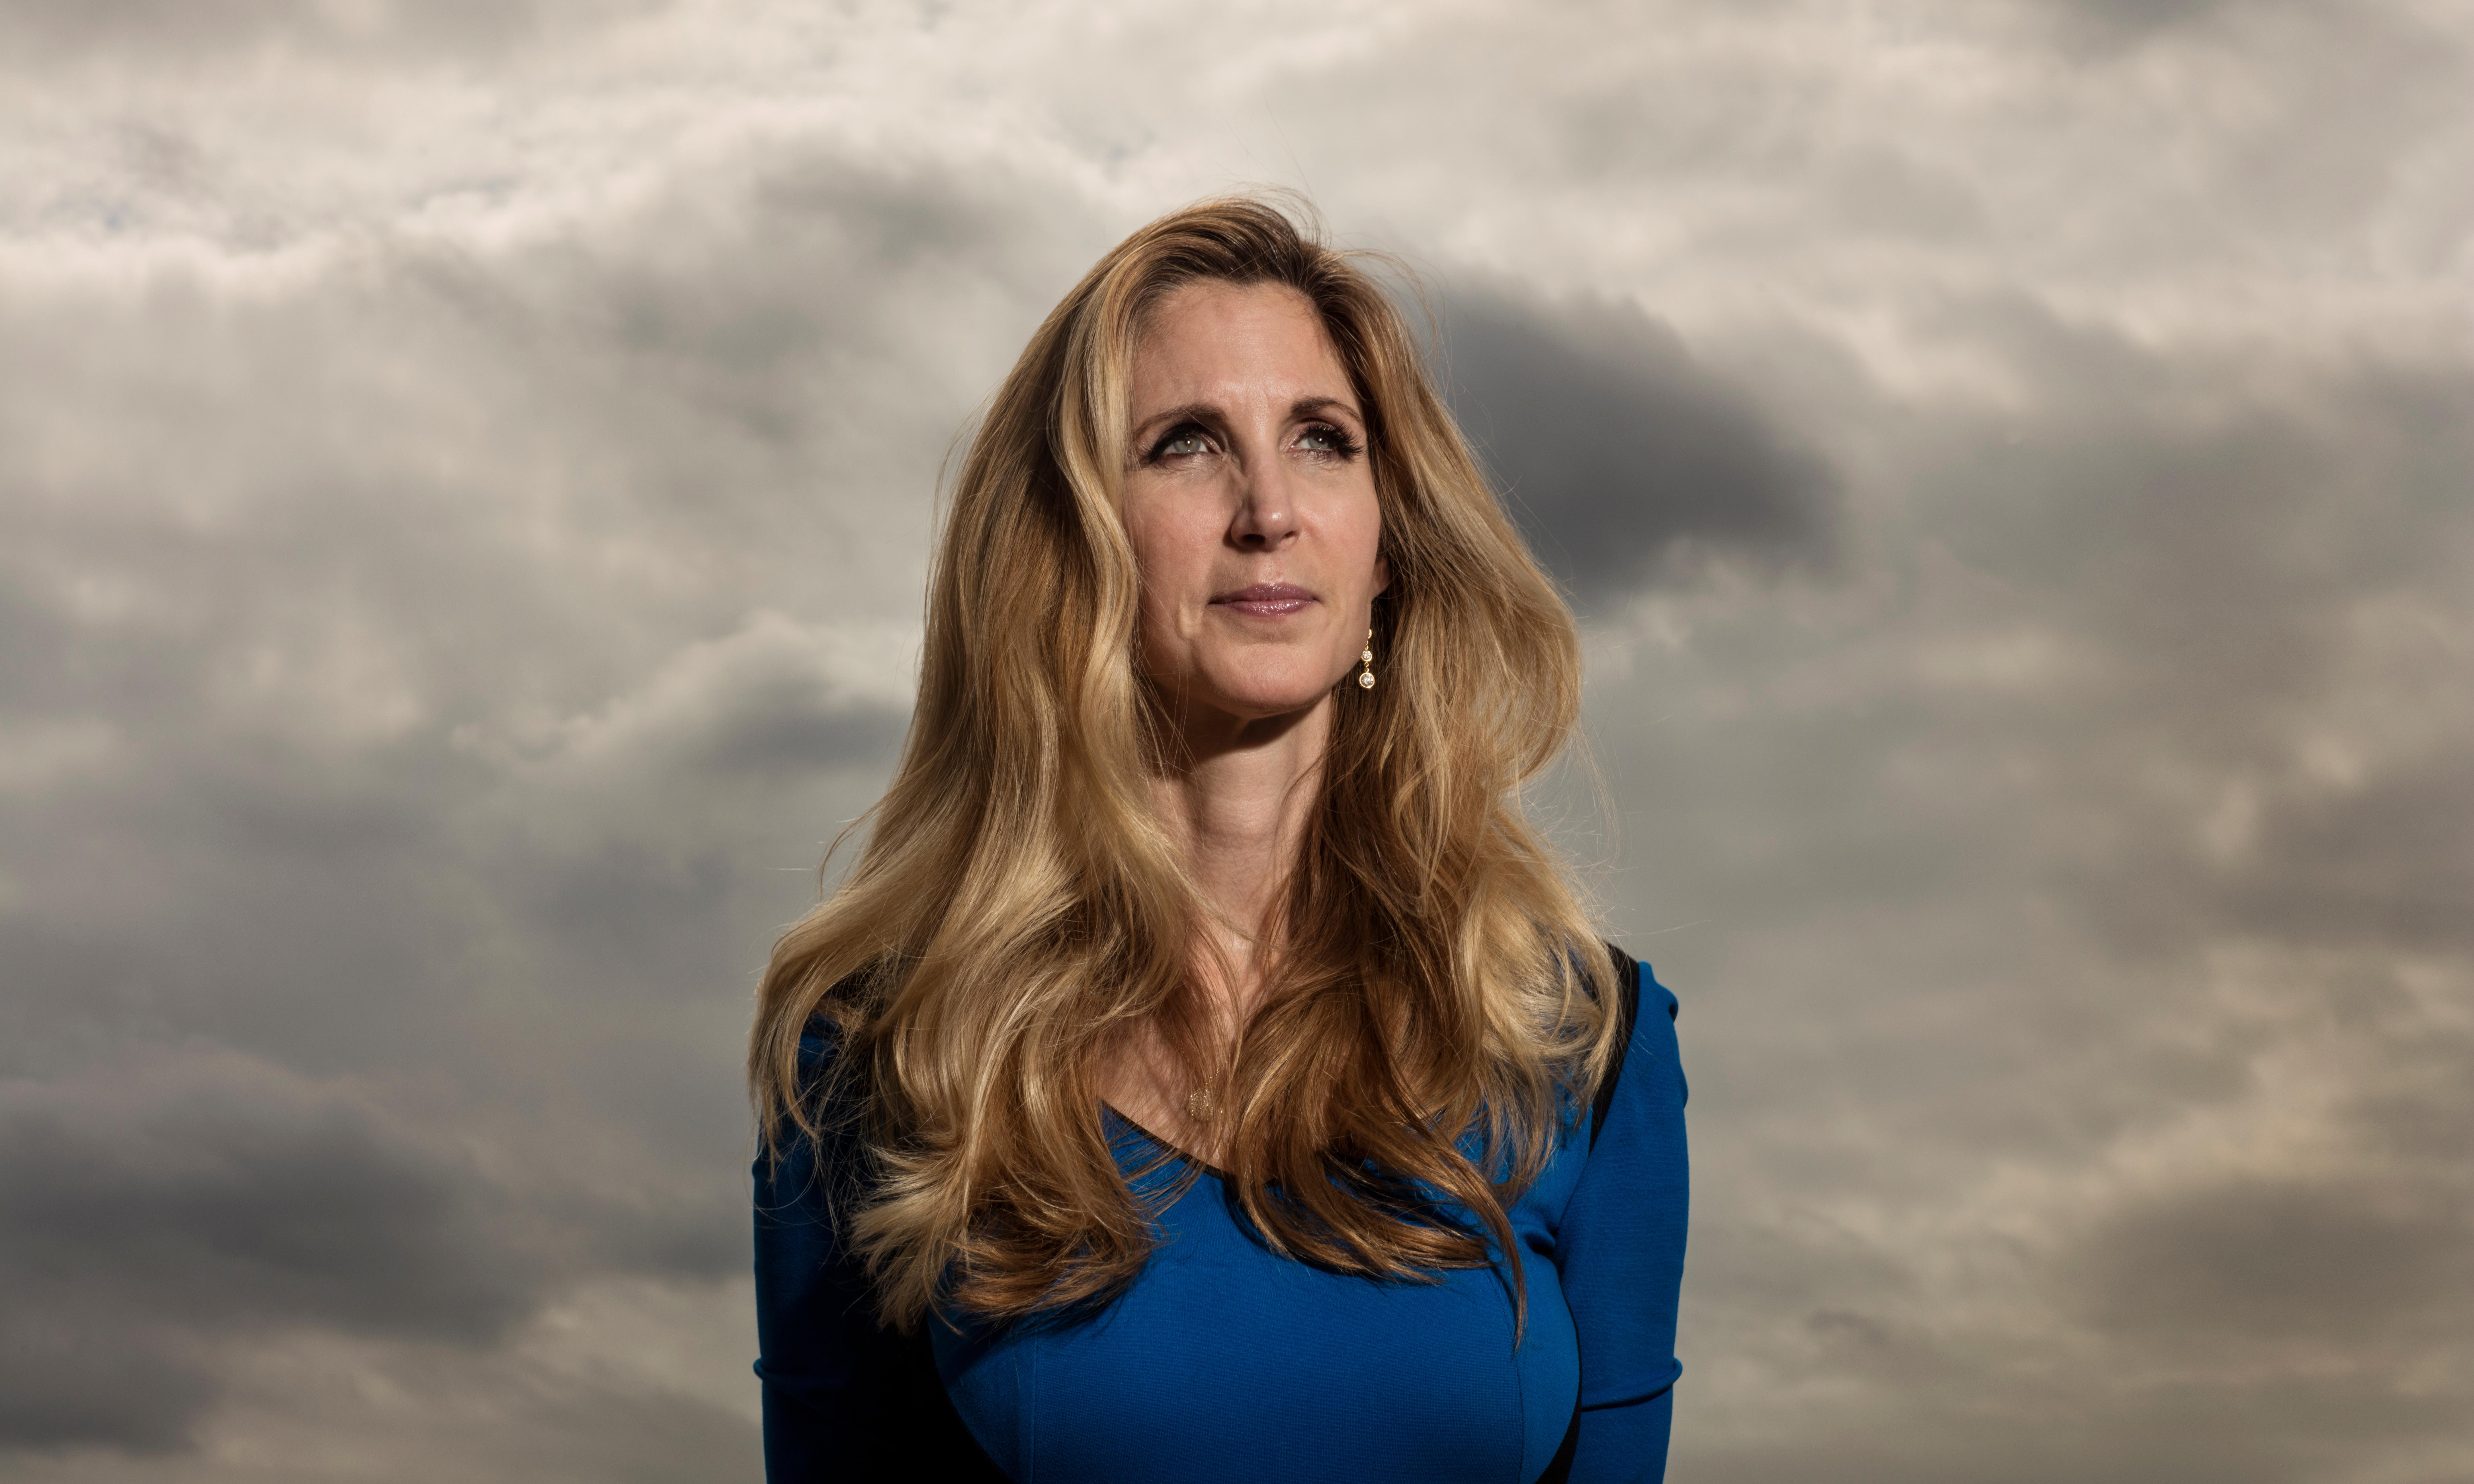 Ann Coulter believes the left has 'lost its mind'. Should we listen?